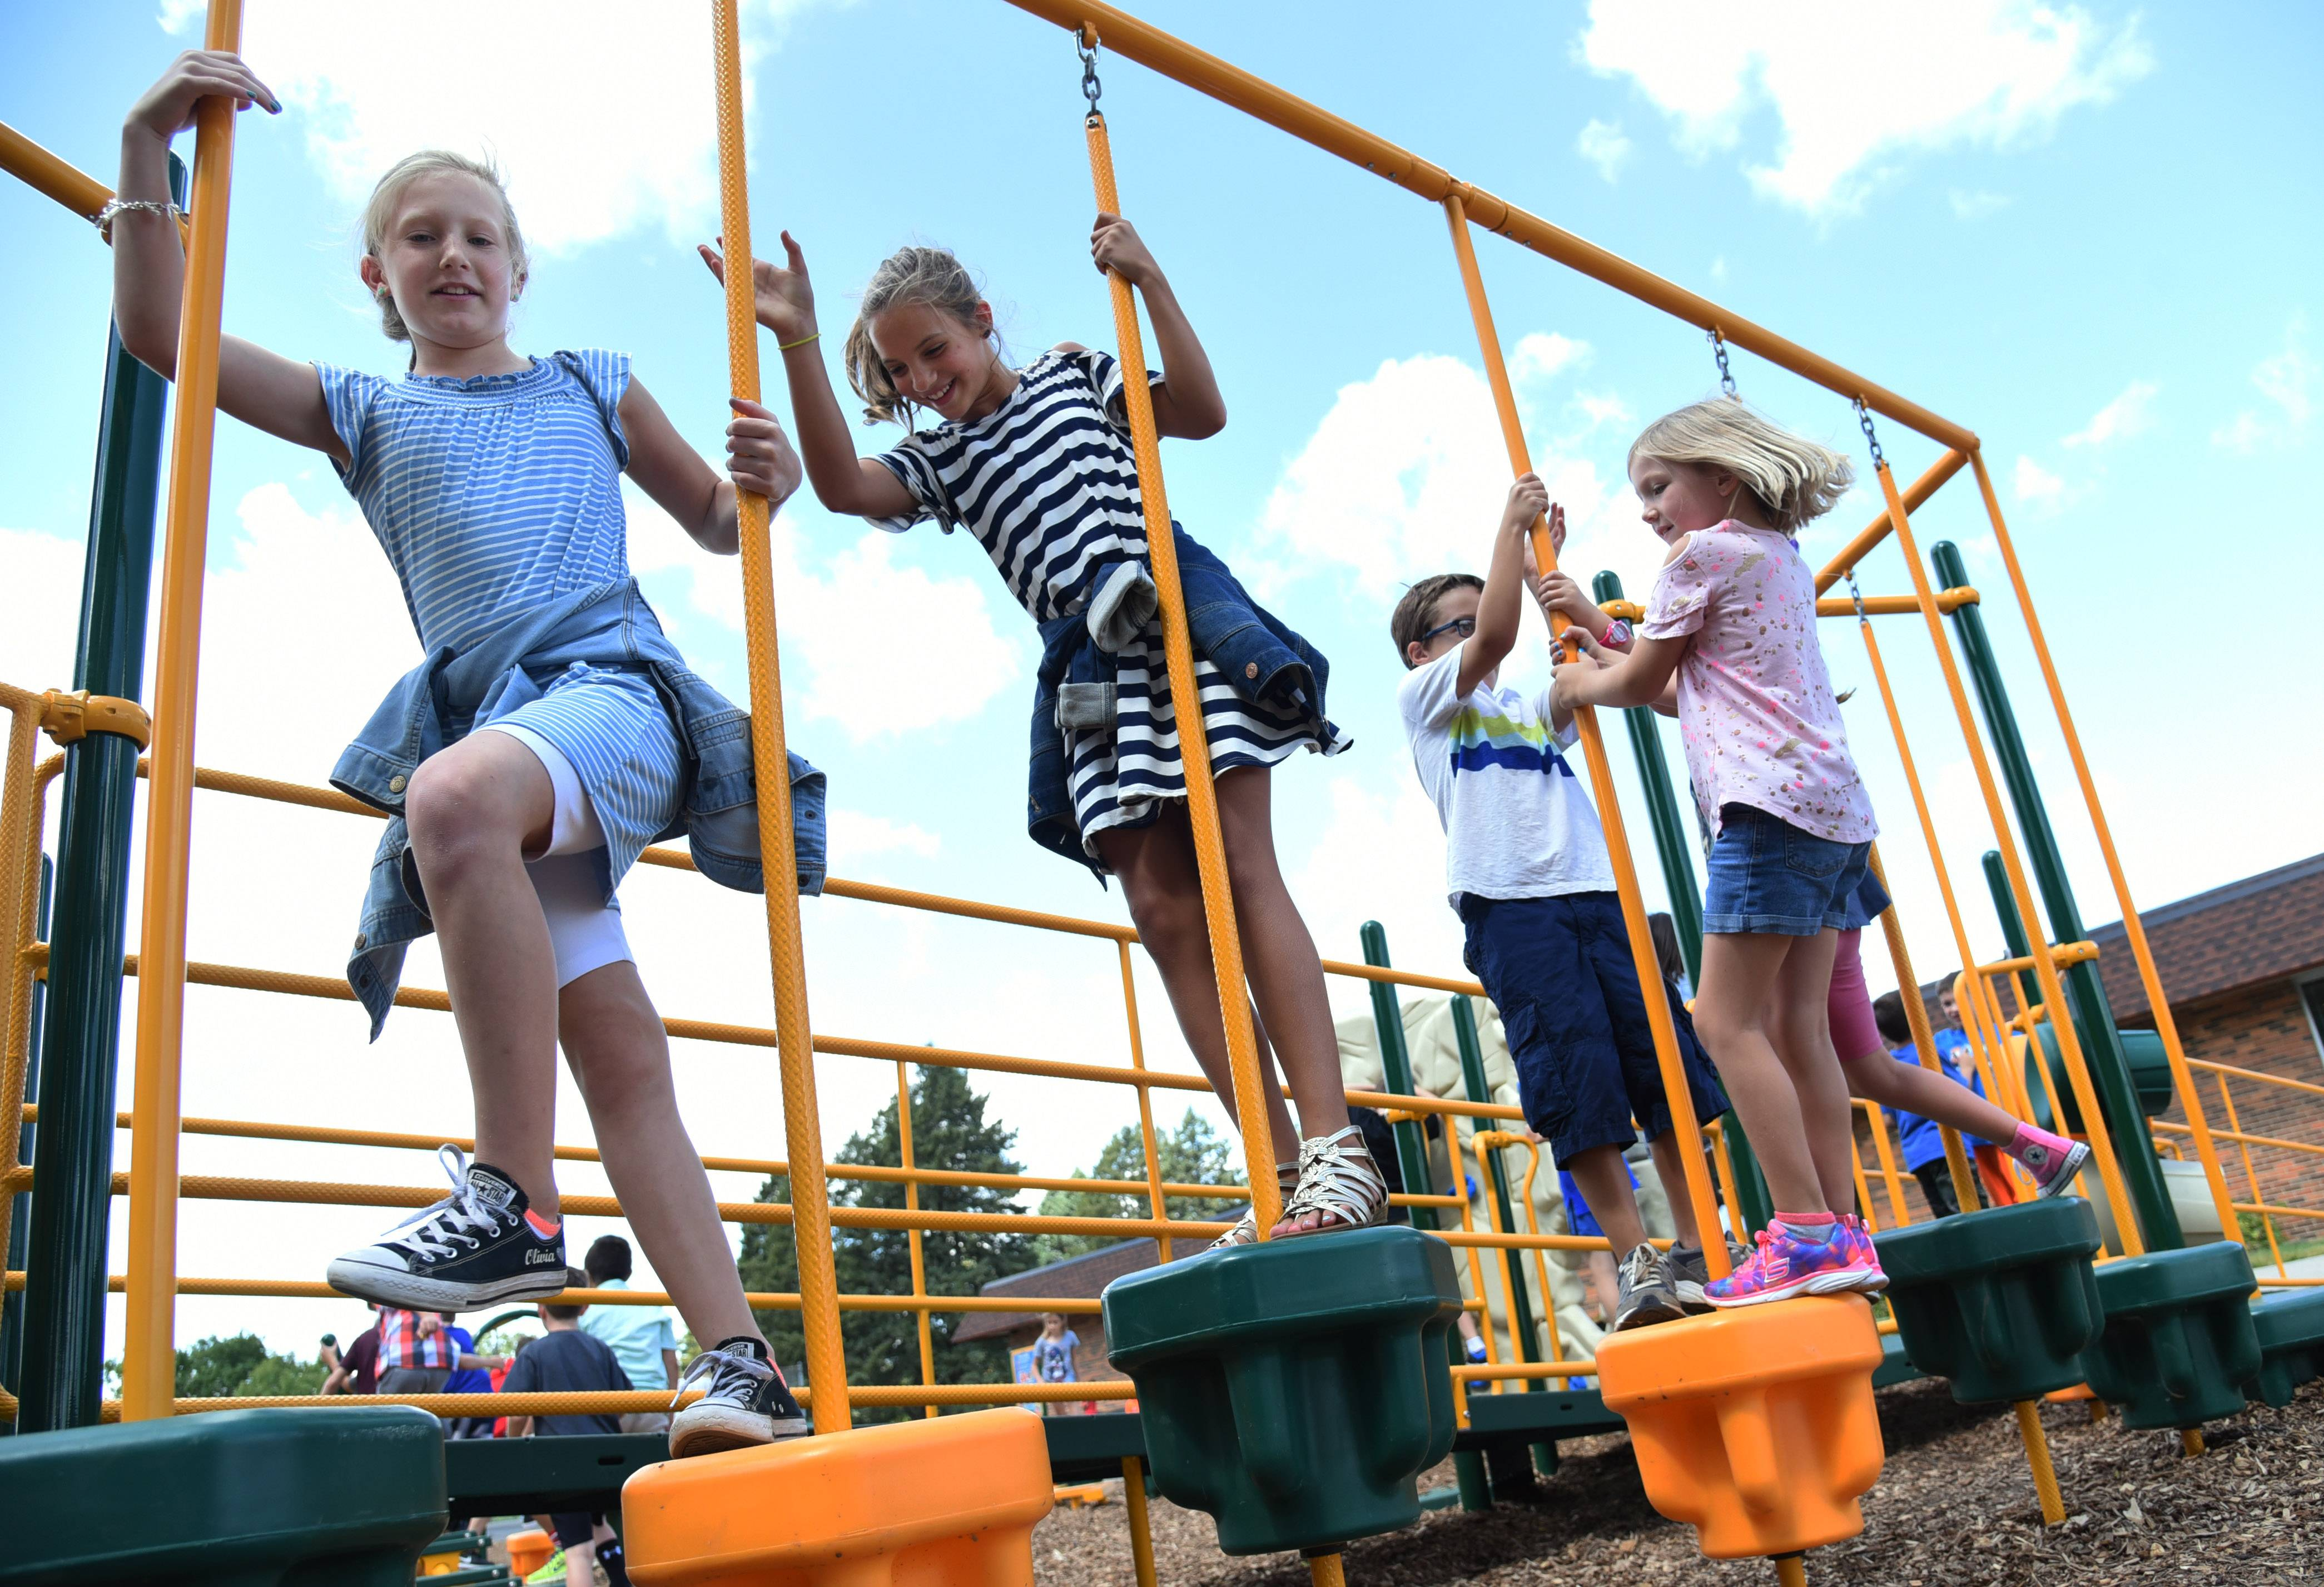 Butterfield School students enjoy a new playground during first day of classes Wednesday at the Libertyville school. Volunteers built the new ADA-compliant playground over the summer.